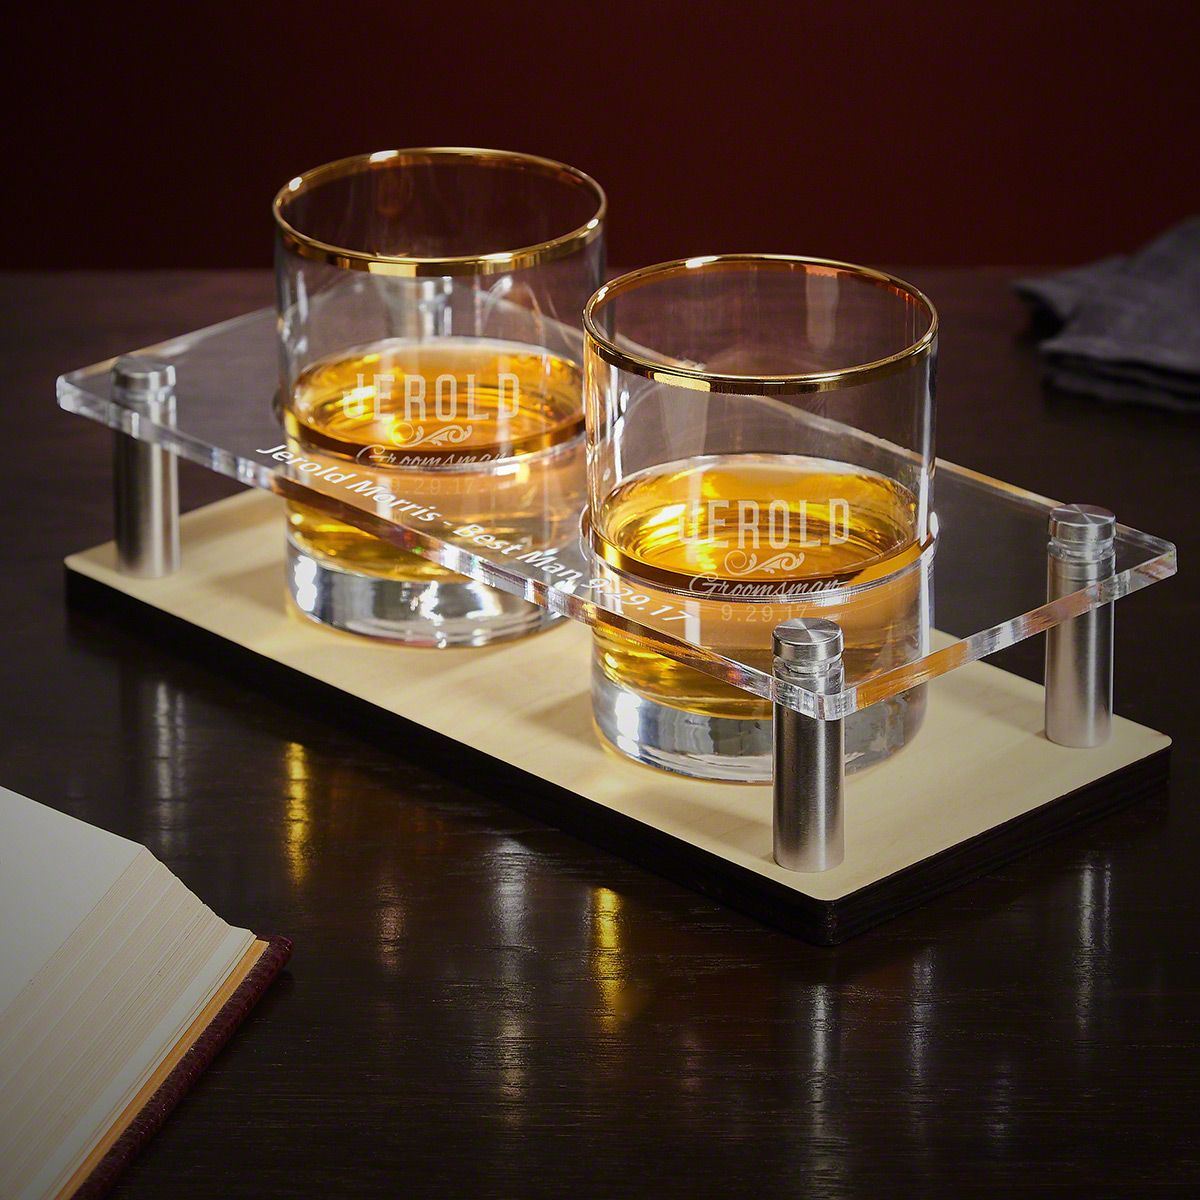 Classic Groomsman Whiskey Tray with Custom Gold Rim Glasses 3 pc Set